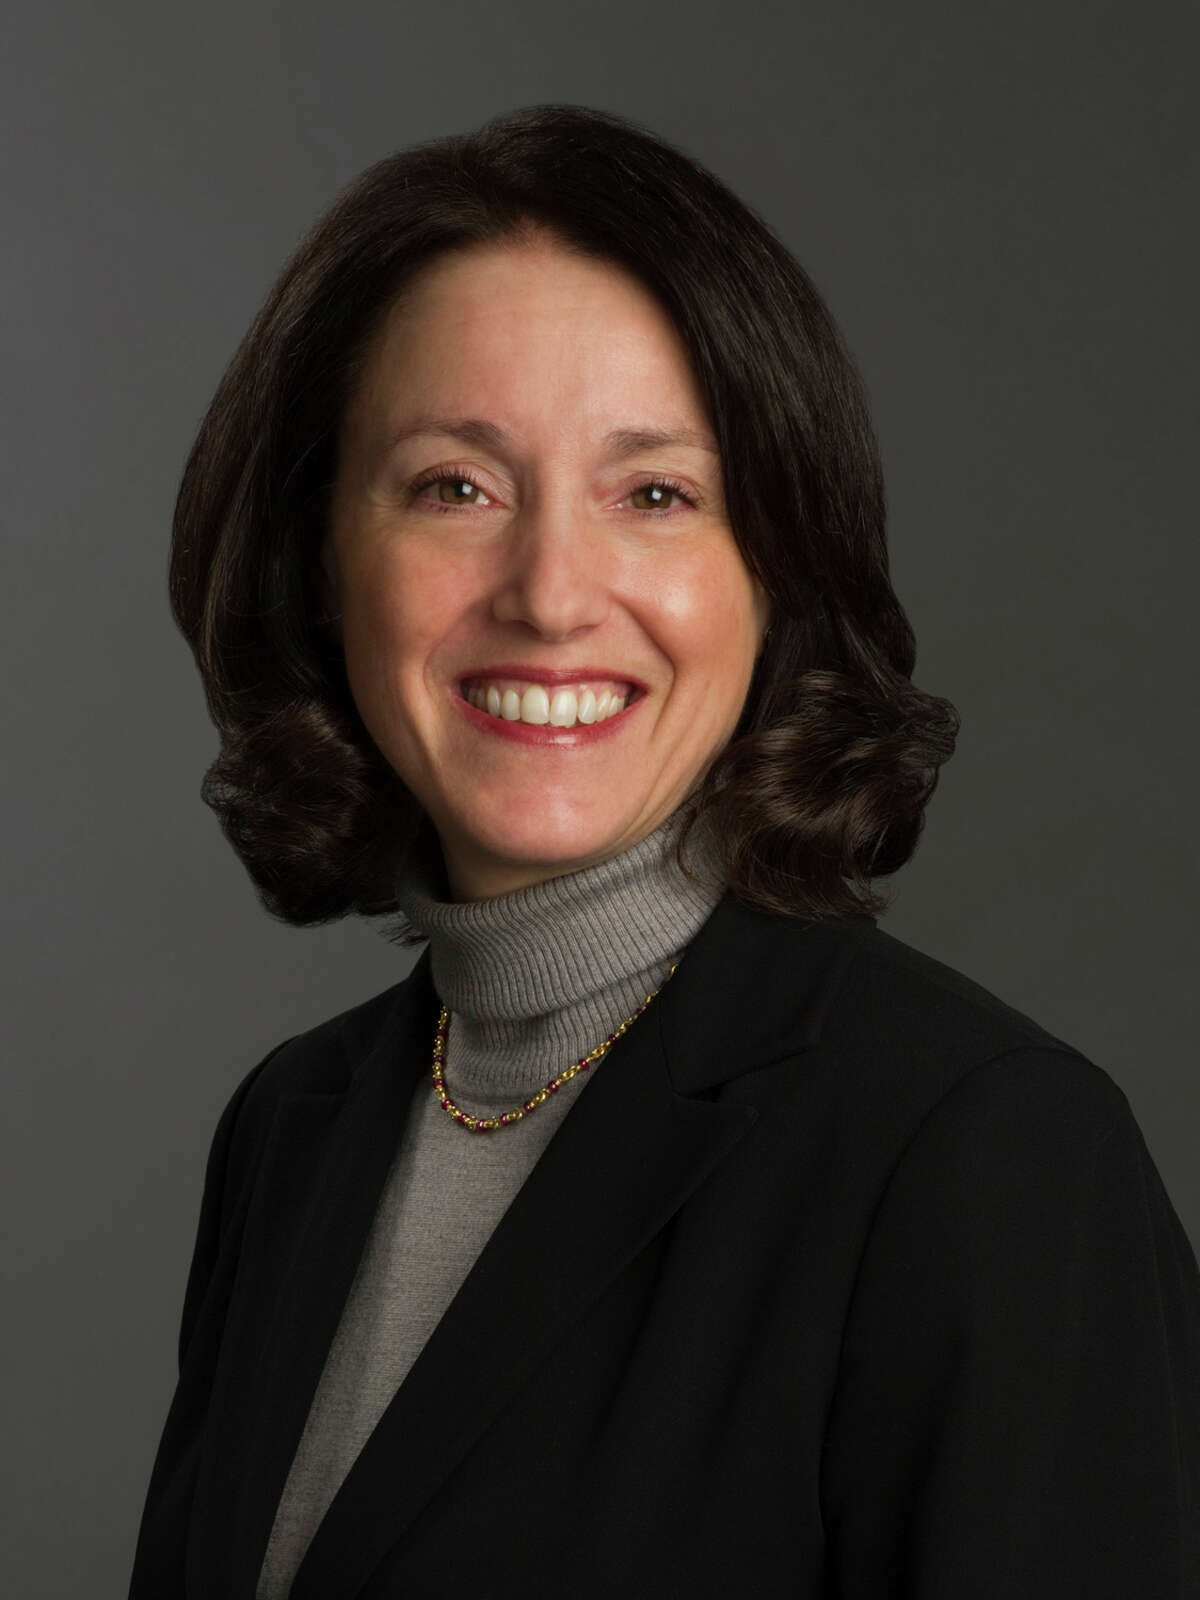 Jill Hummel, the president of Anthem Blue Cross and Blue Shield of Connecticut, was chosen as the honoree at the 14th annual Women's Business Development Council breakfast this October.